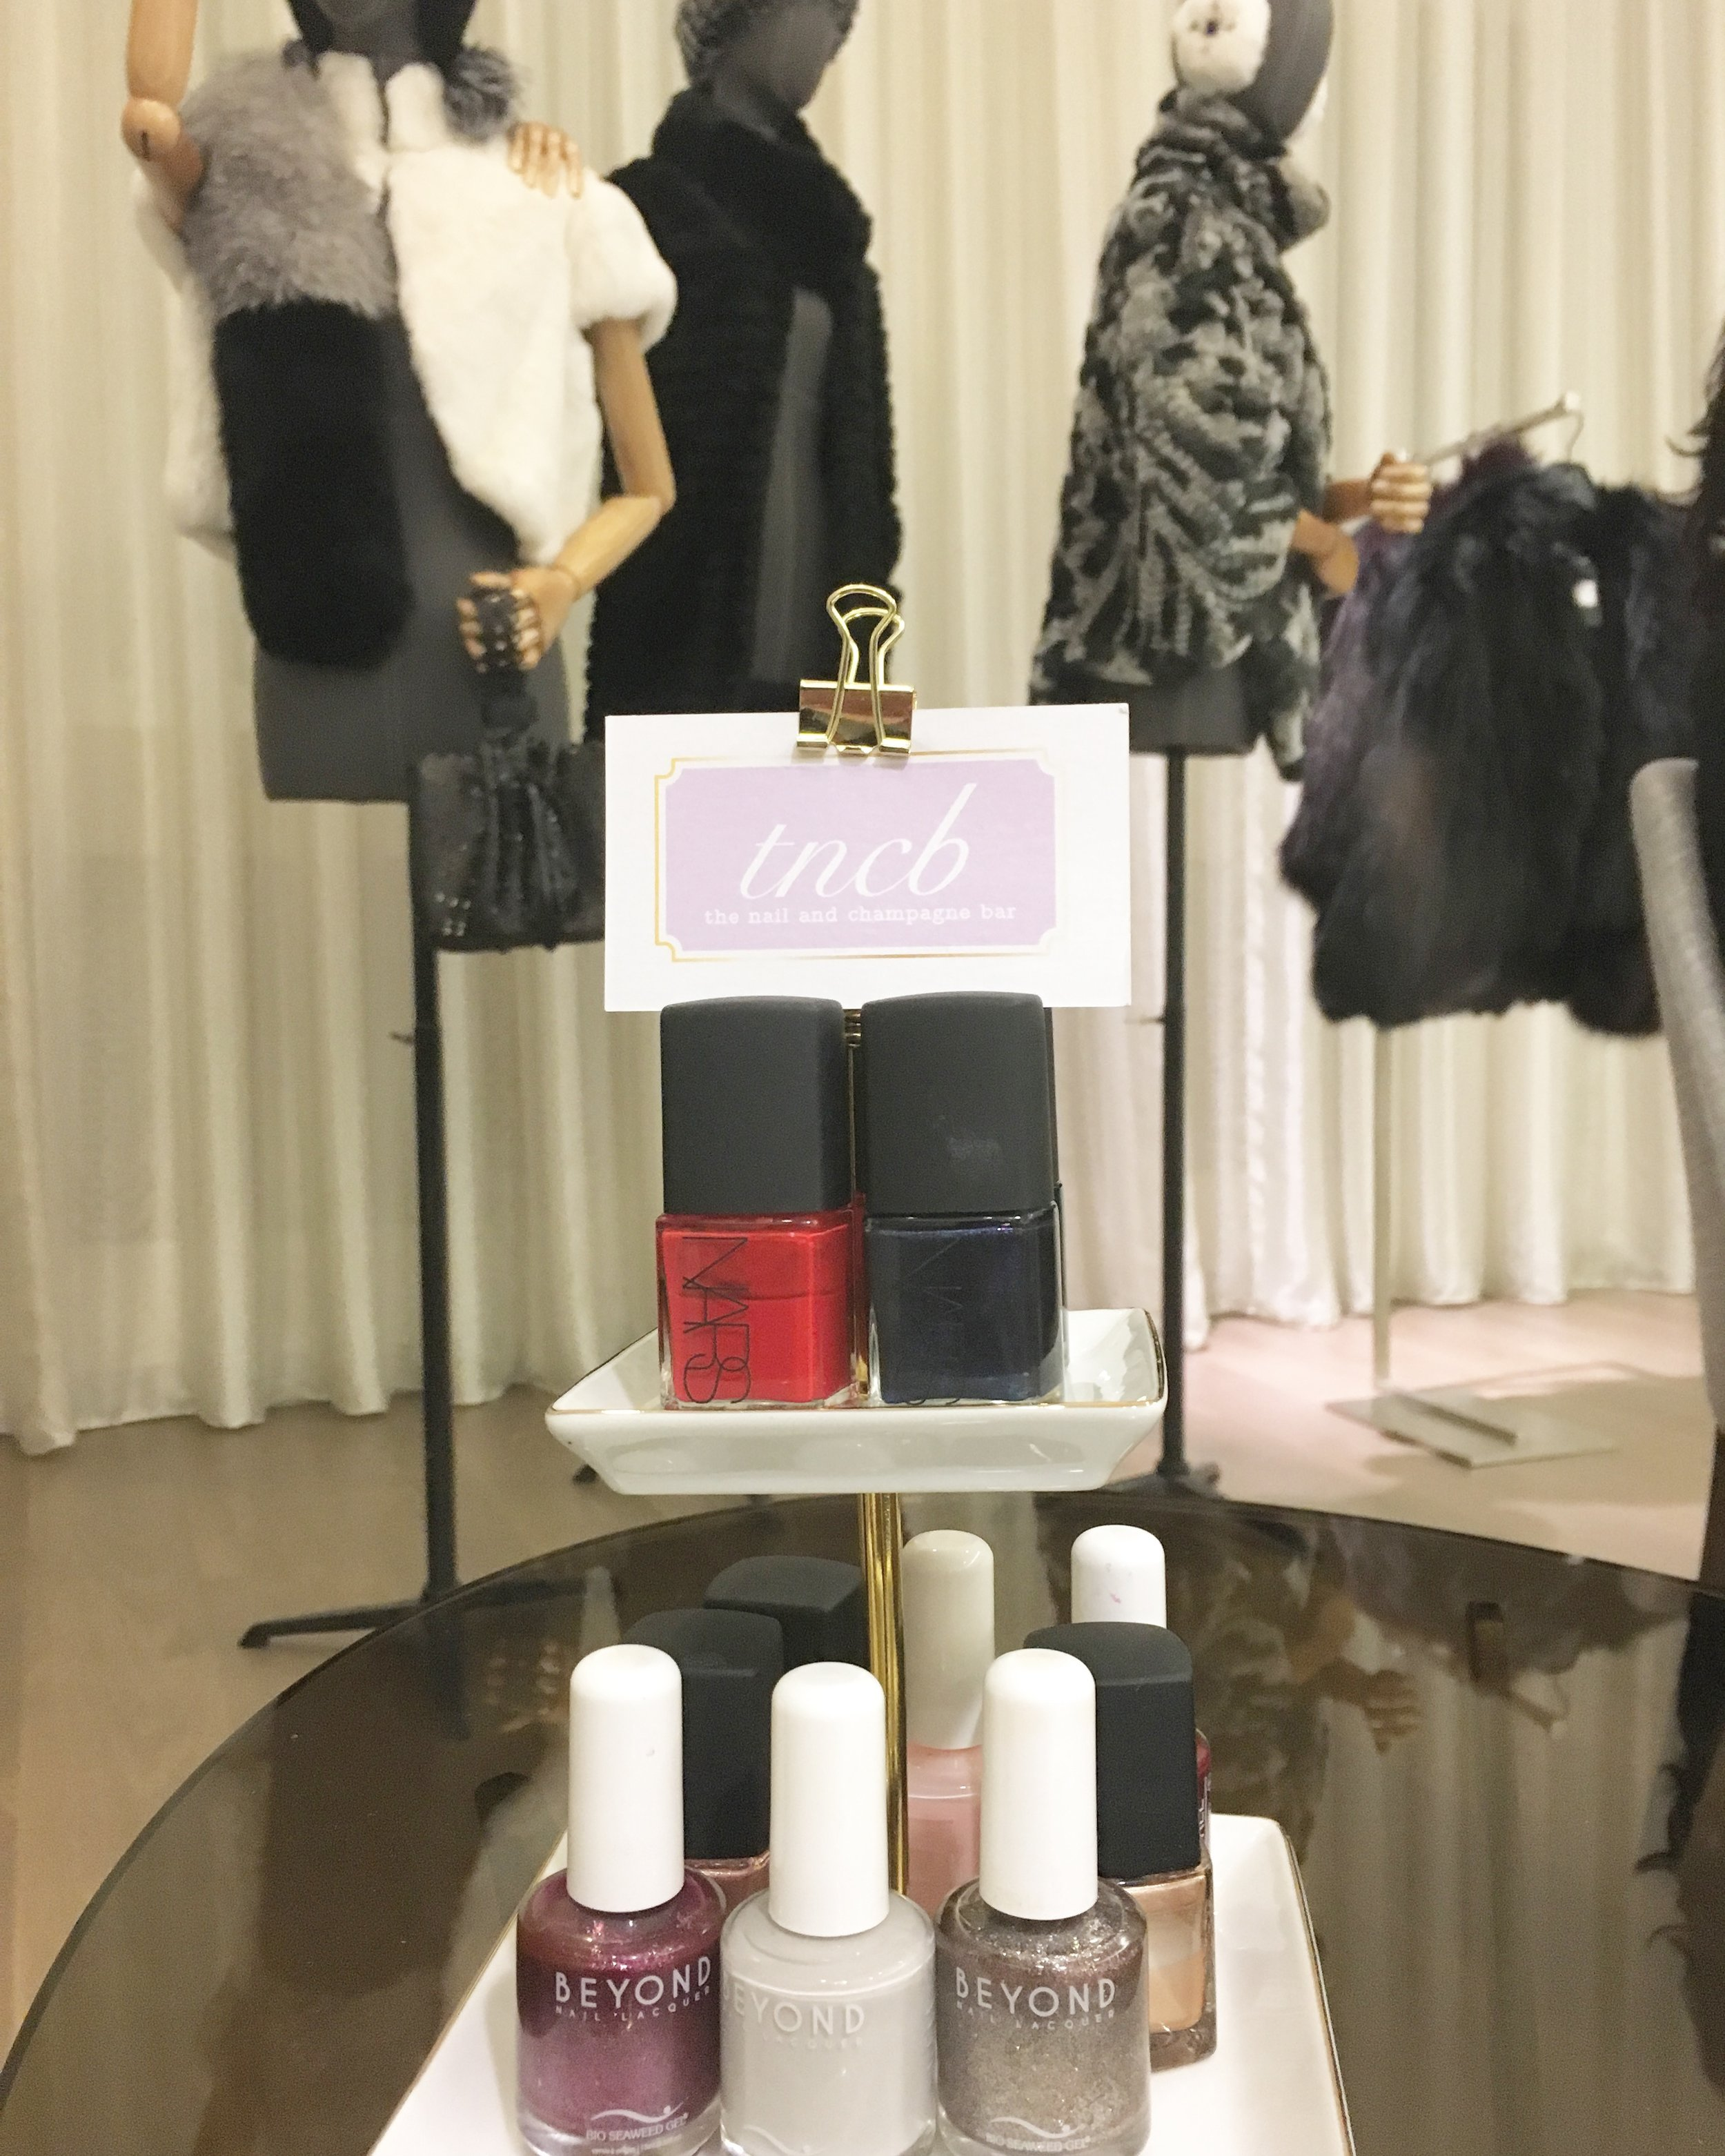 Fifth Avenue Club at Saks Toronto - Private Event